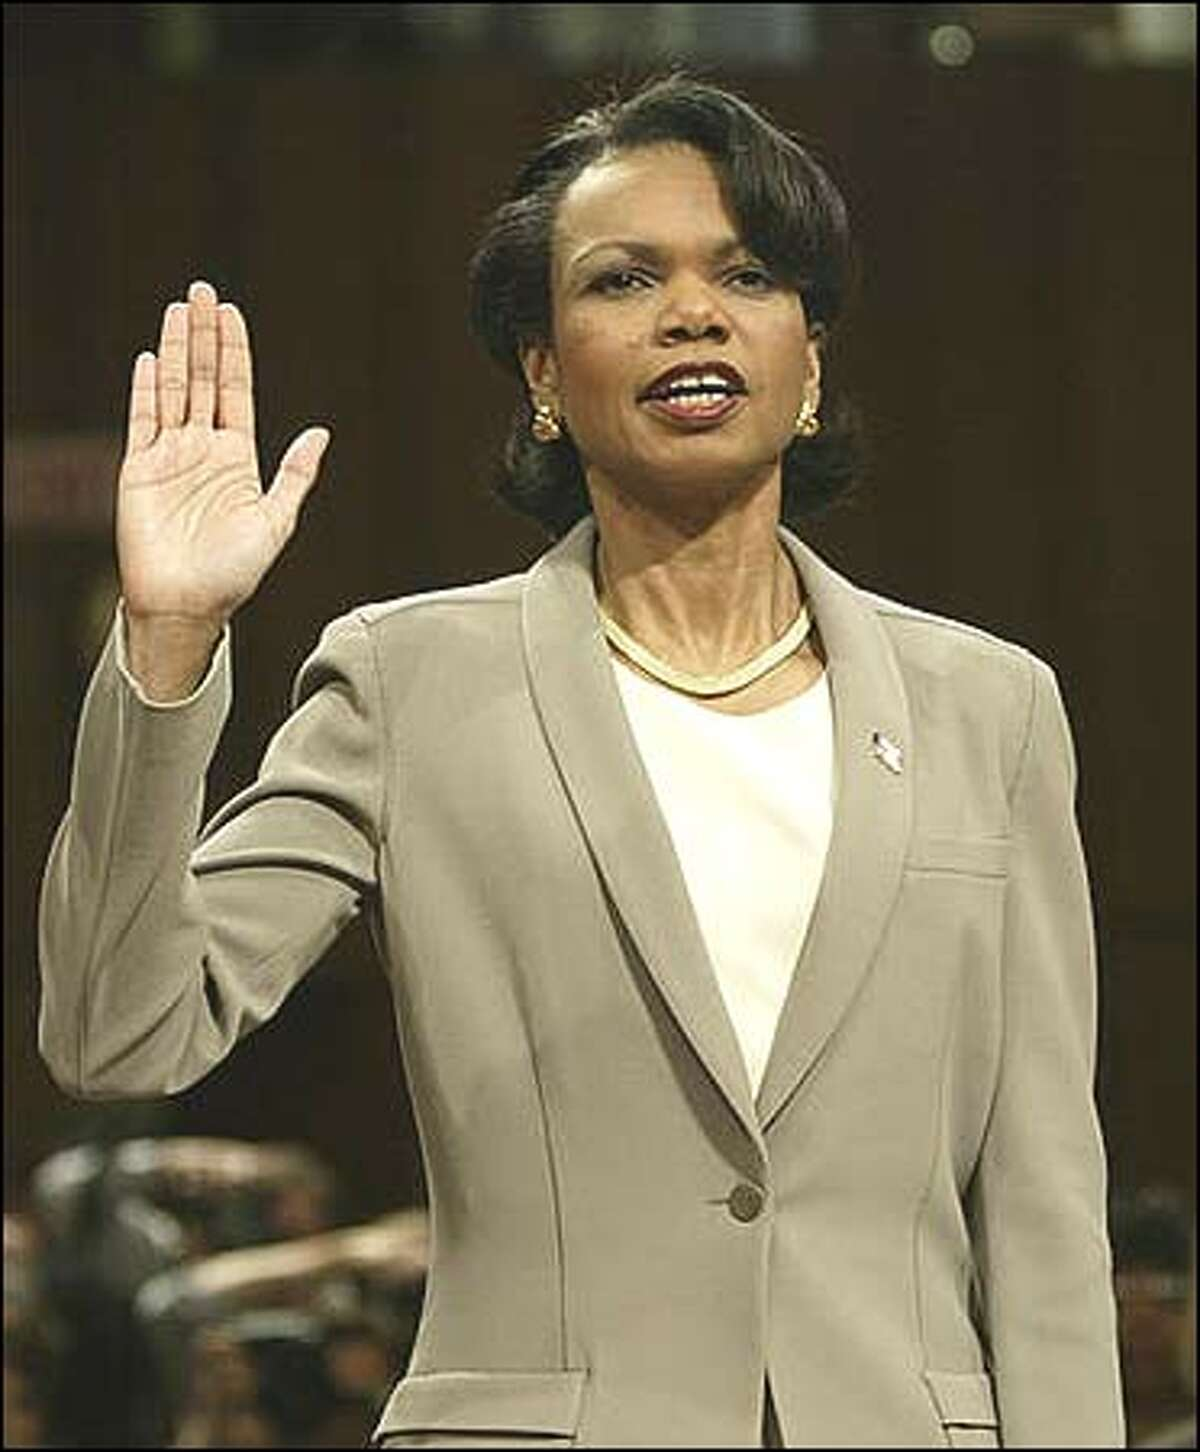 National security adviser Condoleezza Rice is sworn in before testifying to the independent commission investigating the Sept. 11 attacks (Thursday, April 8, 2004, AP Photo/J. Scott Applewhite)